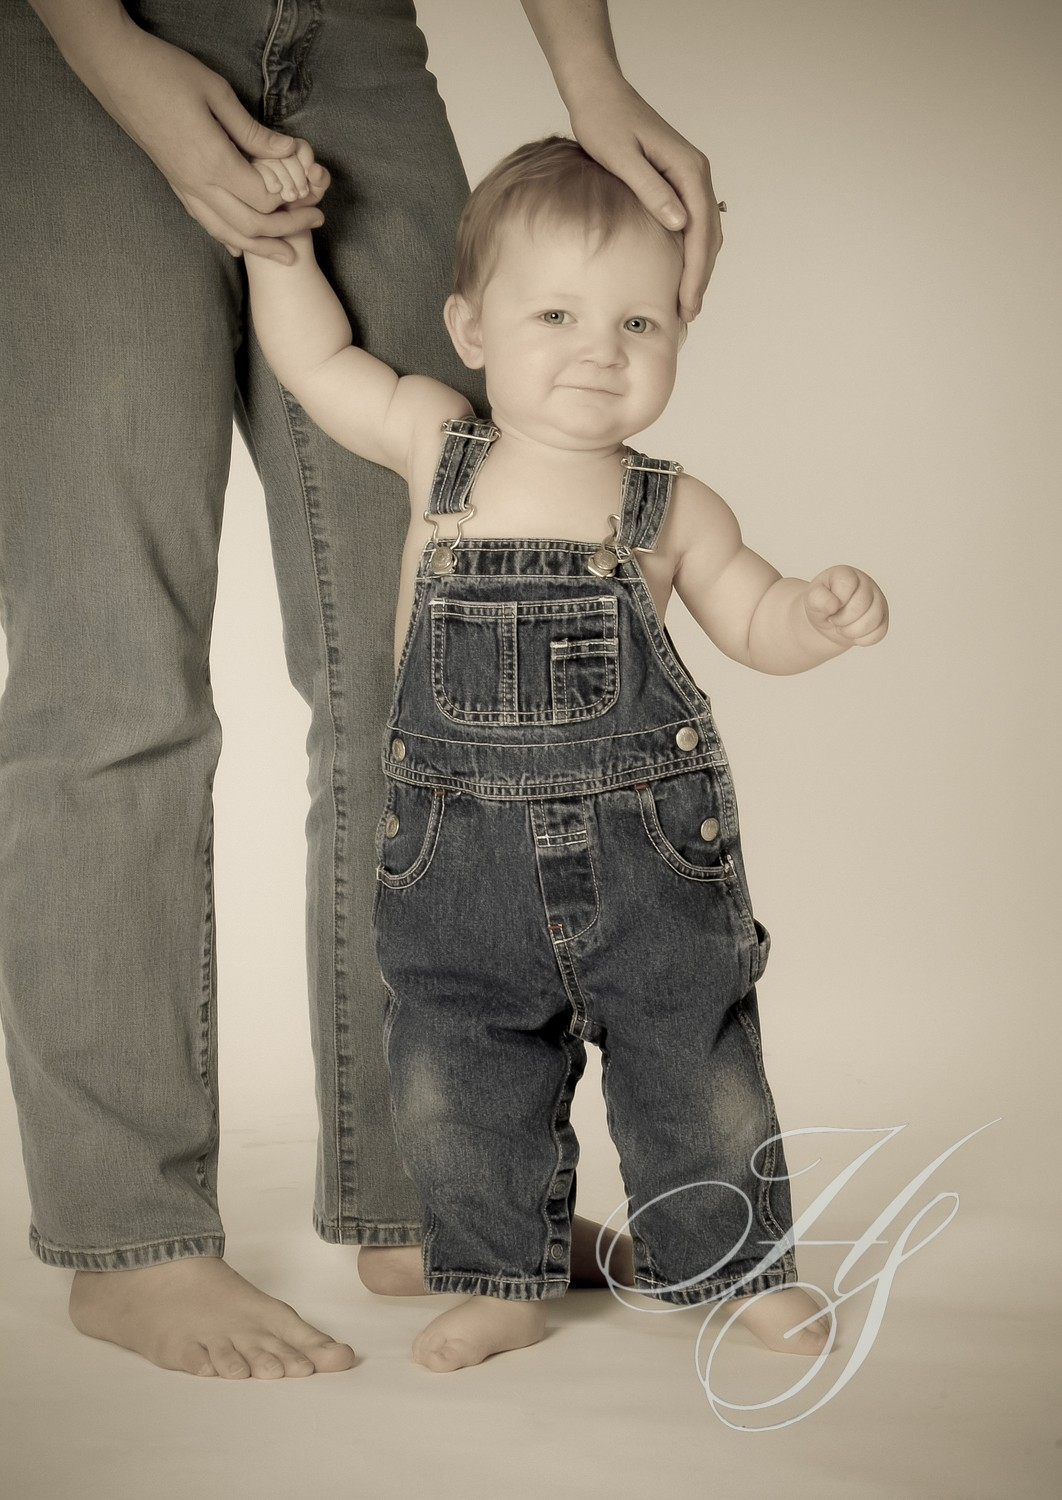 Heirloom Studio, In studio casual Portrait, Child